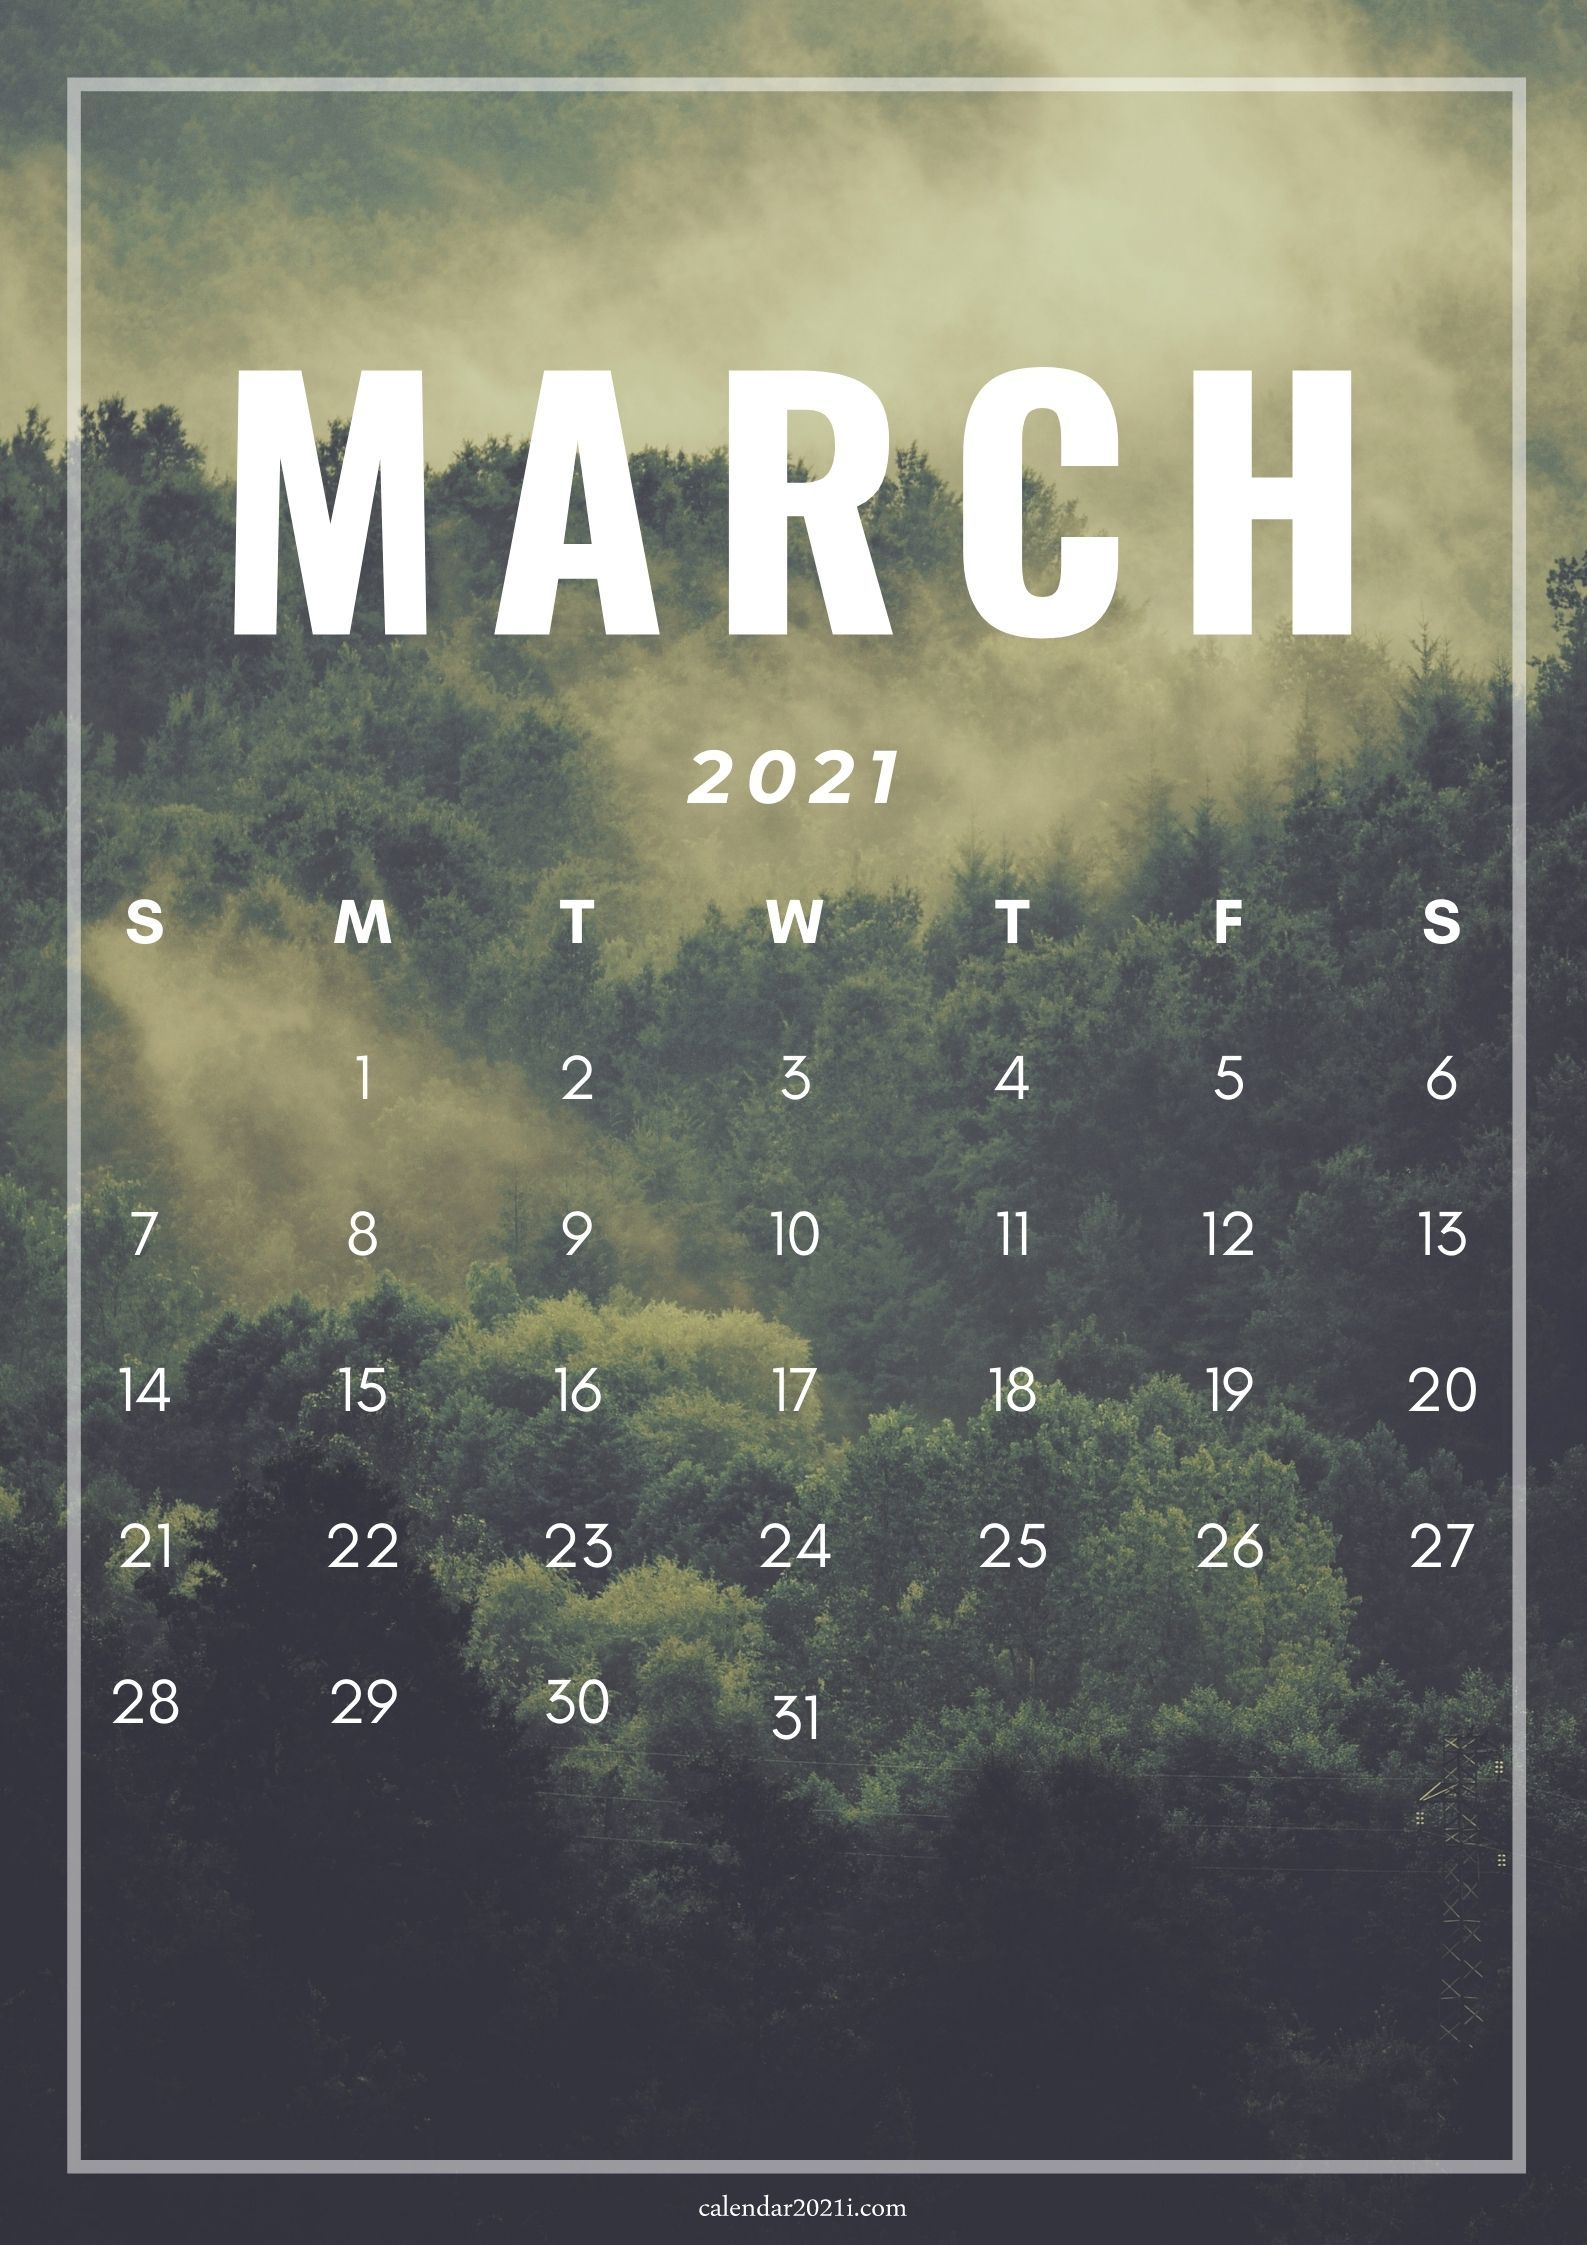 iPhone March 2021 Calendar Wallpapers Download Calendar 2021 1587x2245